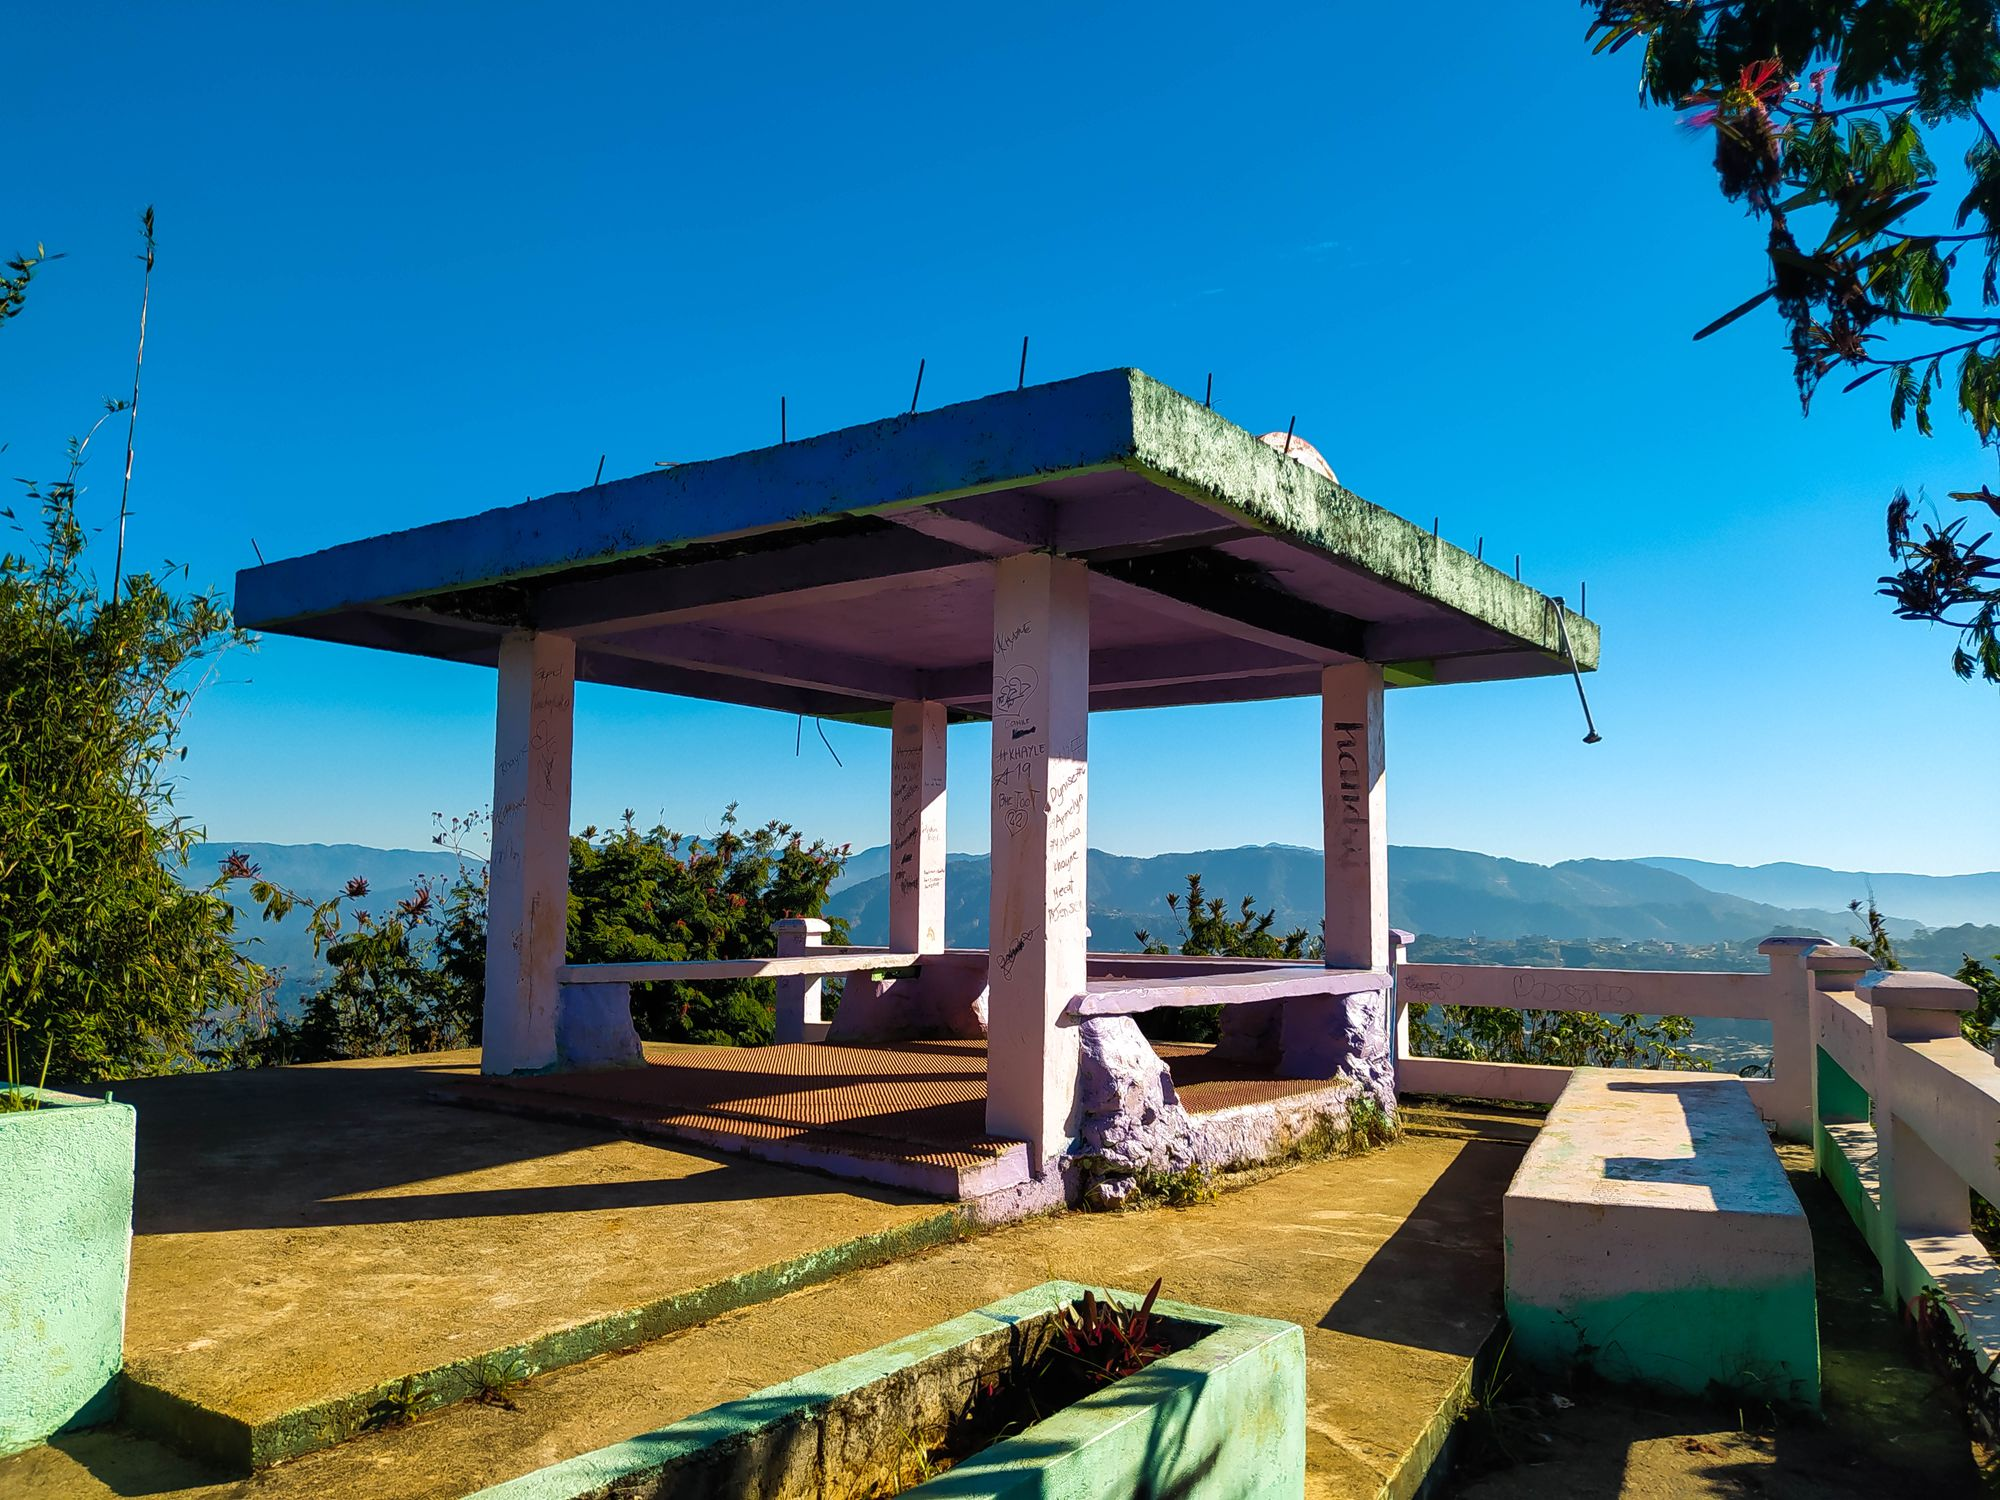 A concrete view deck overlooking a view of mountains